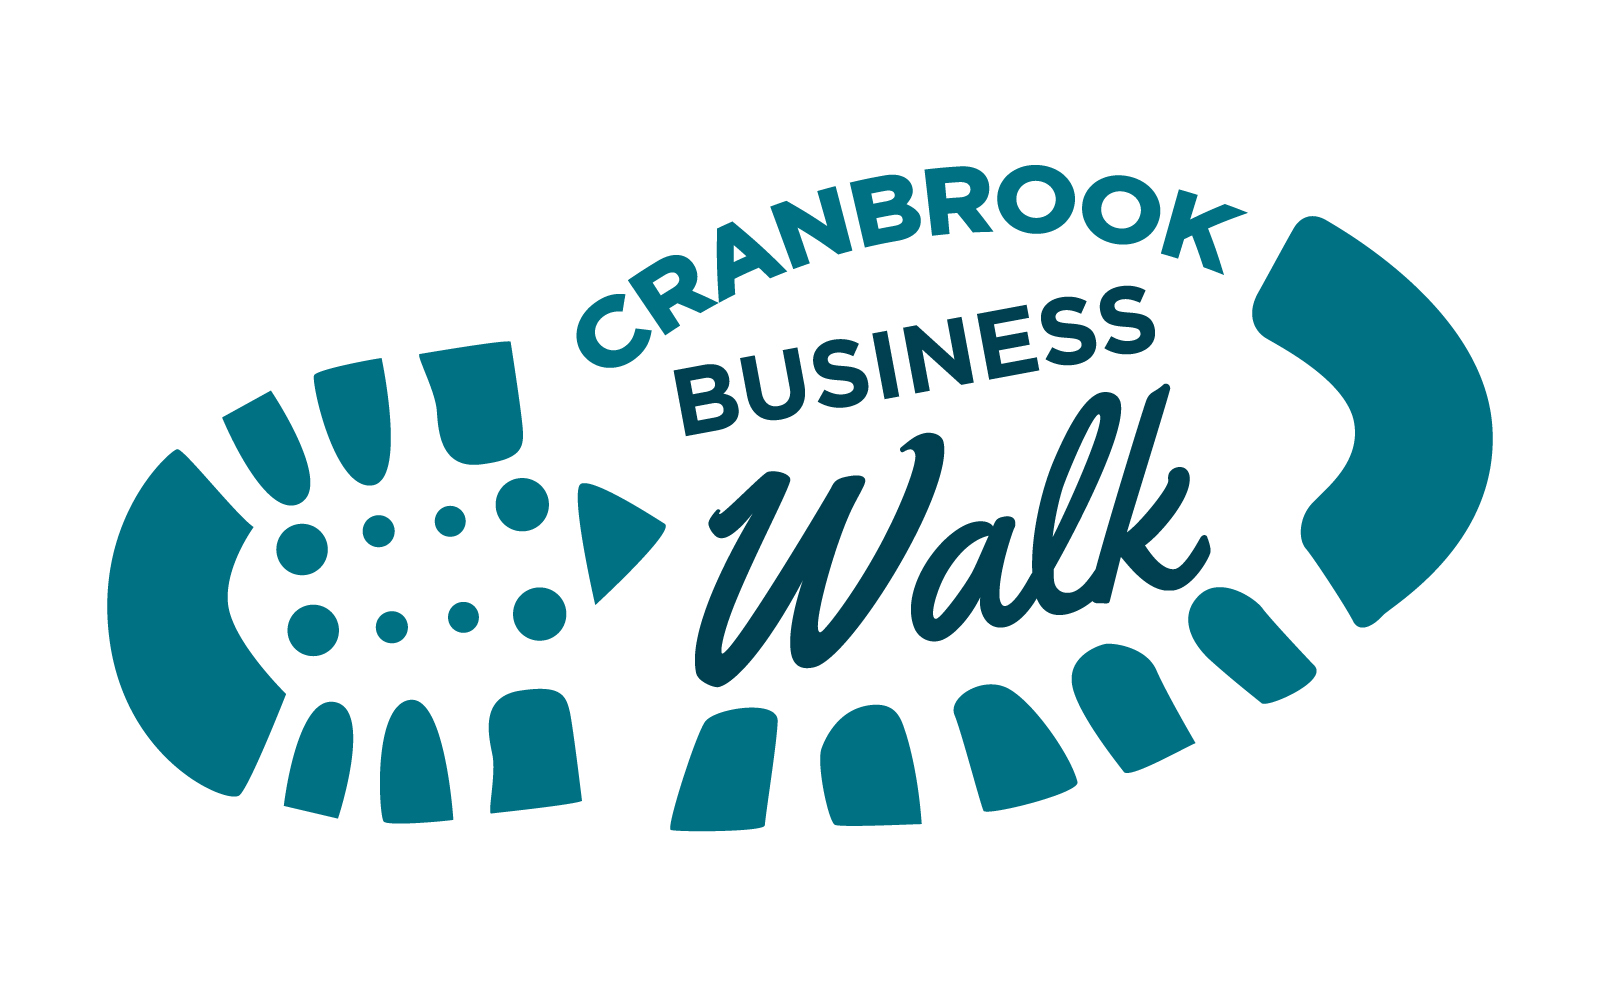 Cranbrook Chamber of Commerce releases preliminary Business Walk Data